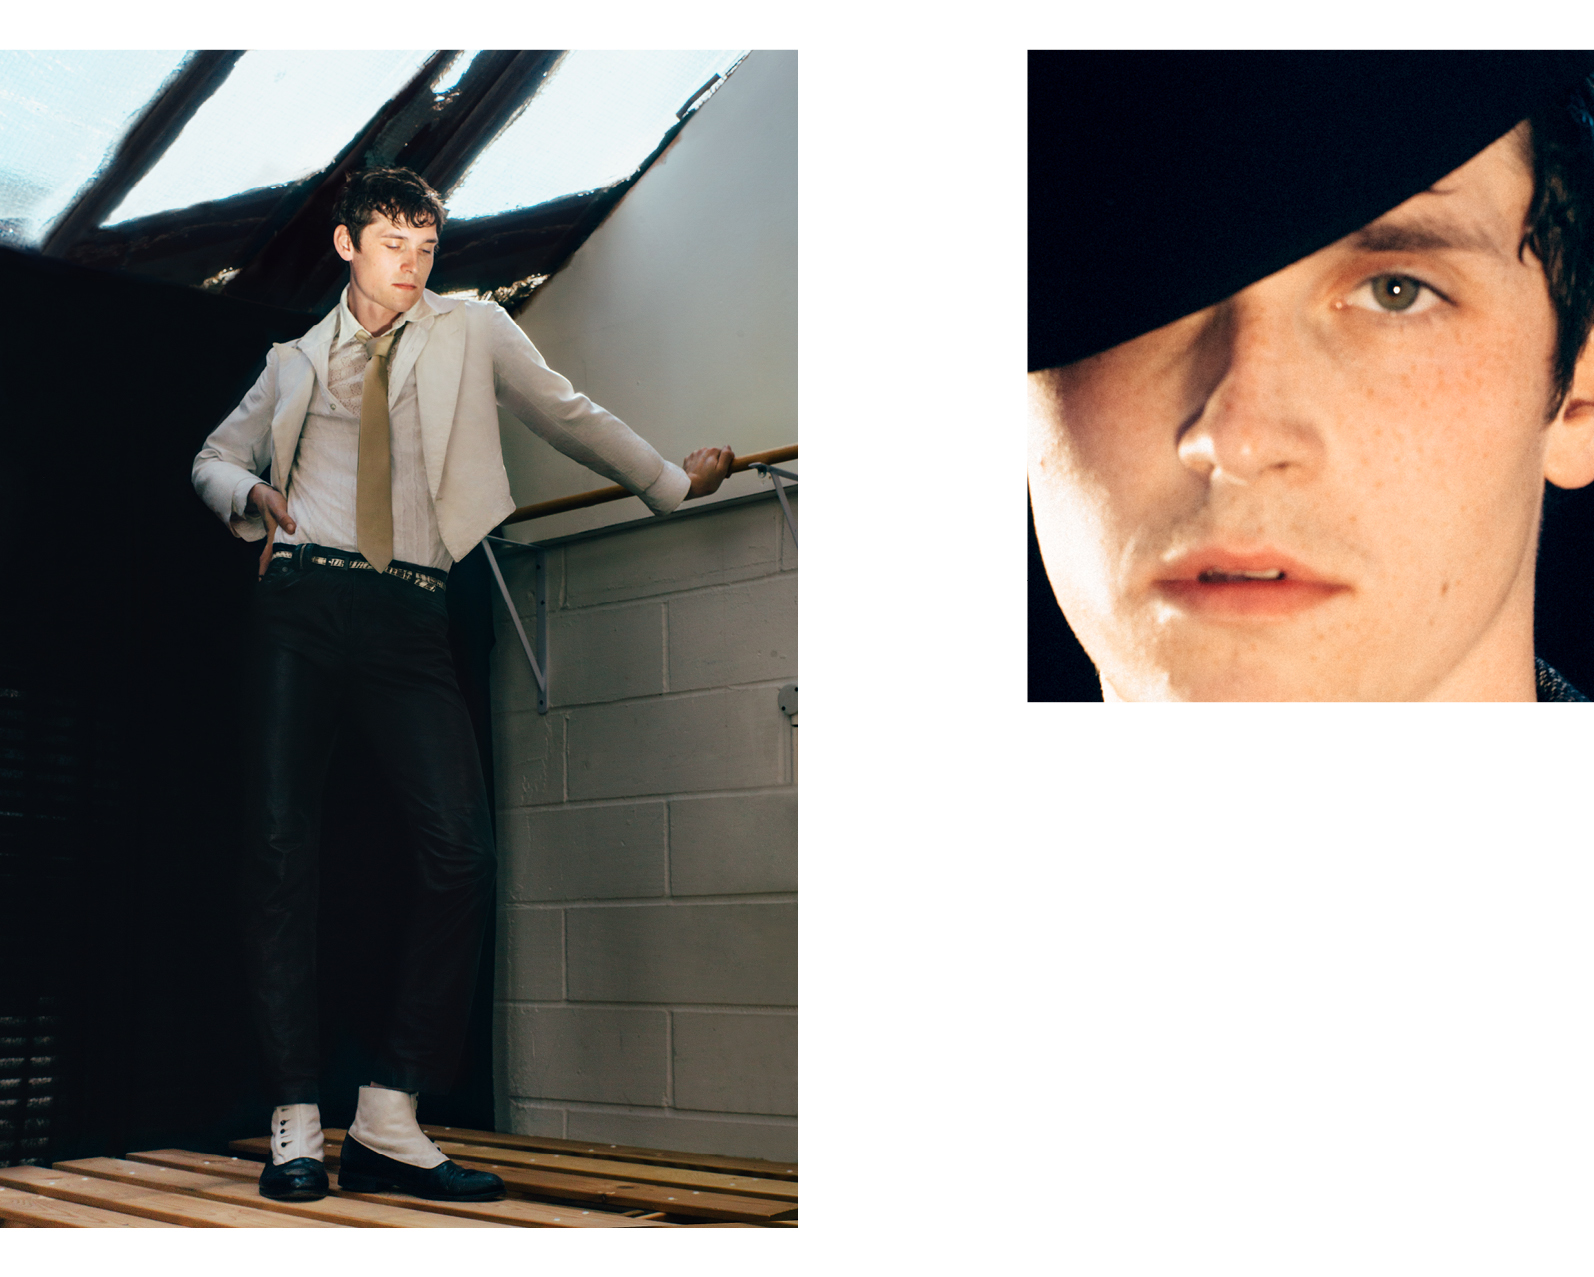 Left: Jacket, tie, and belt, stylist's own. Shirt by Pierre Cardin. Shirt, worn underneath, by Hugo Boss. Trousers by John Galliano. Shoes, worn throughout, from the Costume Studio, London.Right: Hat by Davide Cenci.